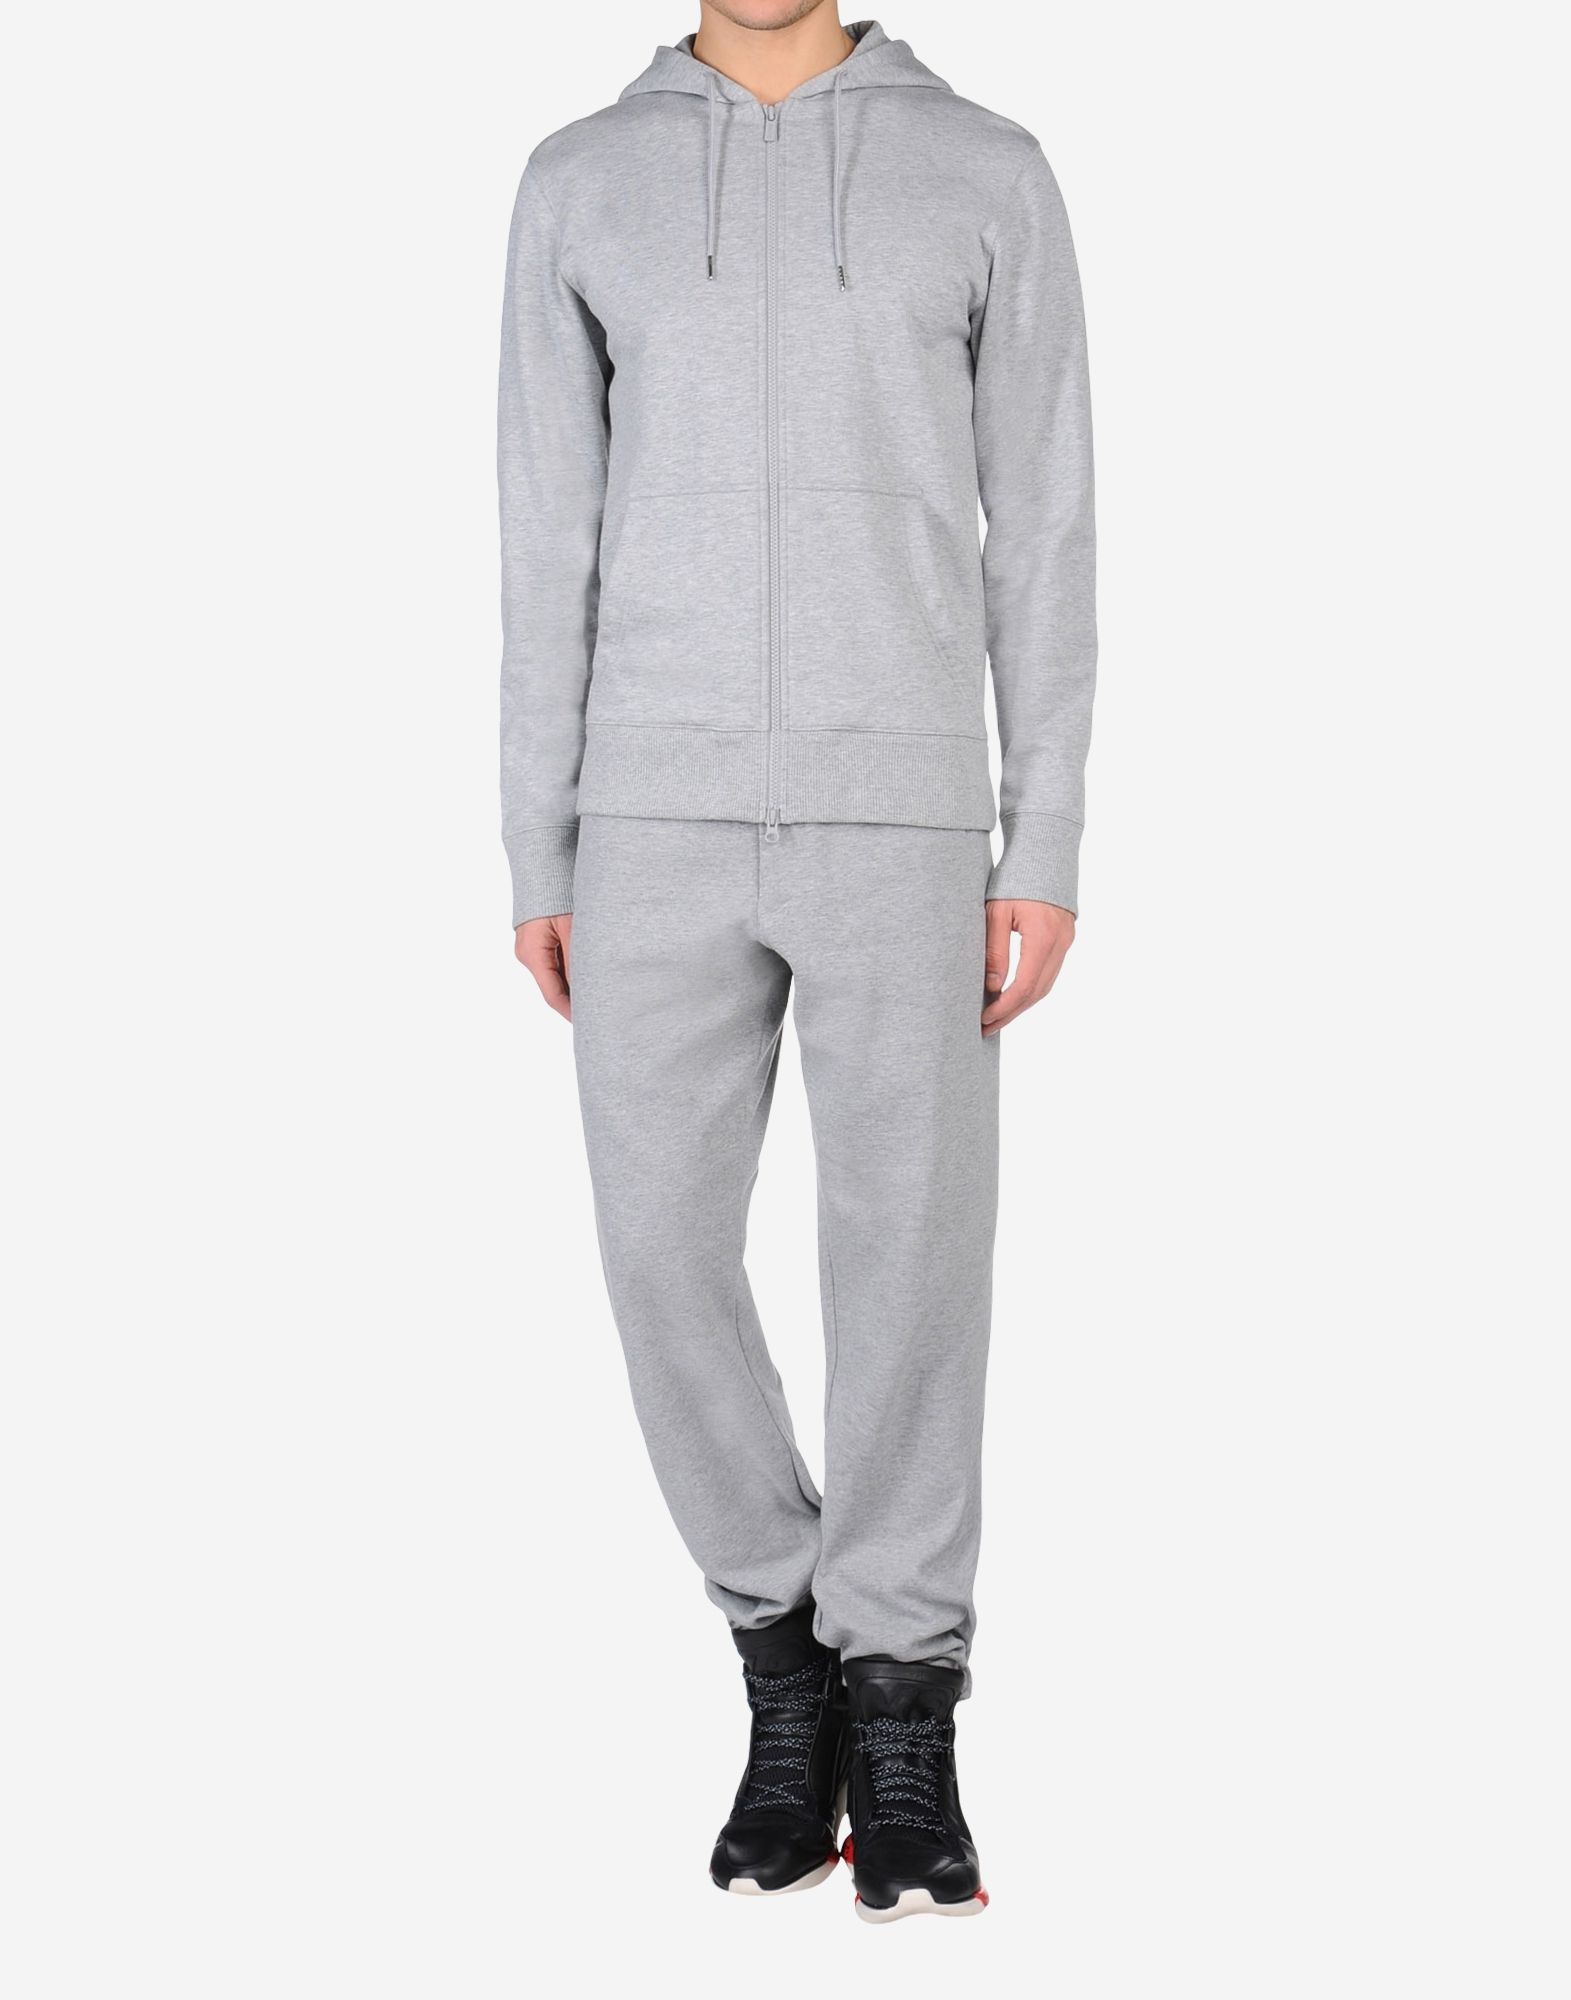 Y 3 Classic Zip Up Hoodie Hooded Sweatshirts for Men | Adidas Y-3 ...